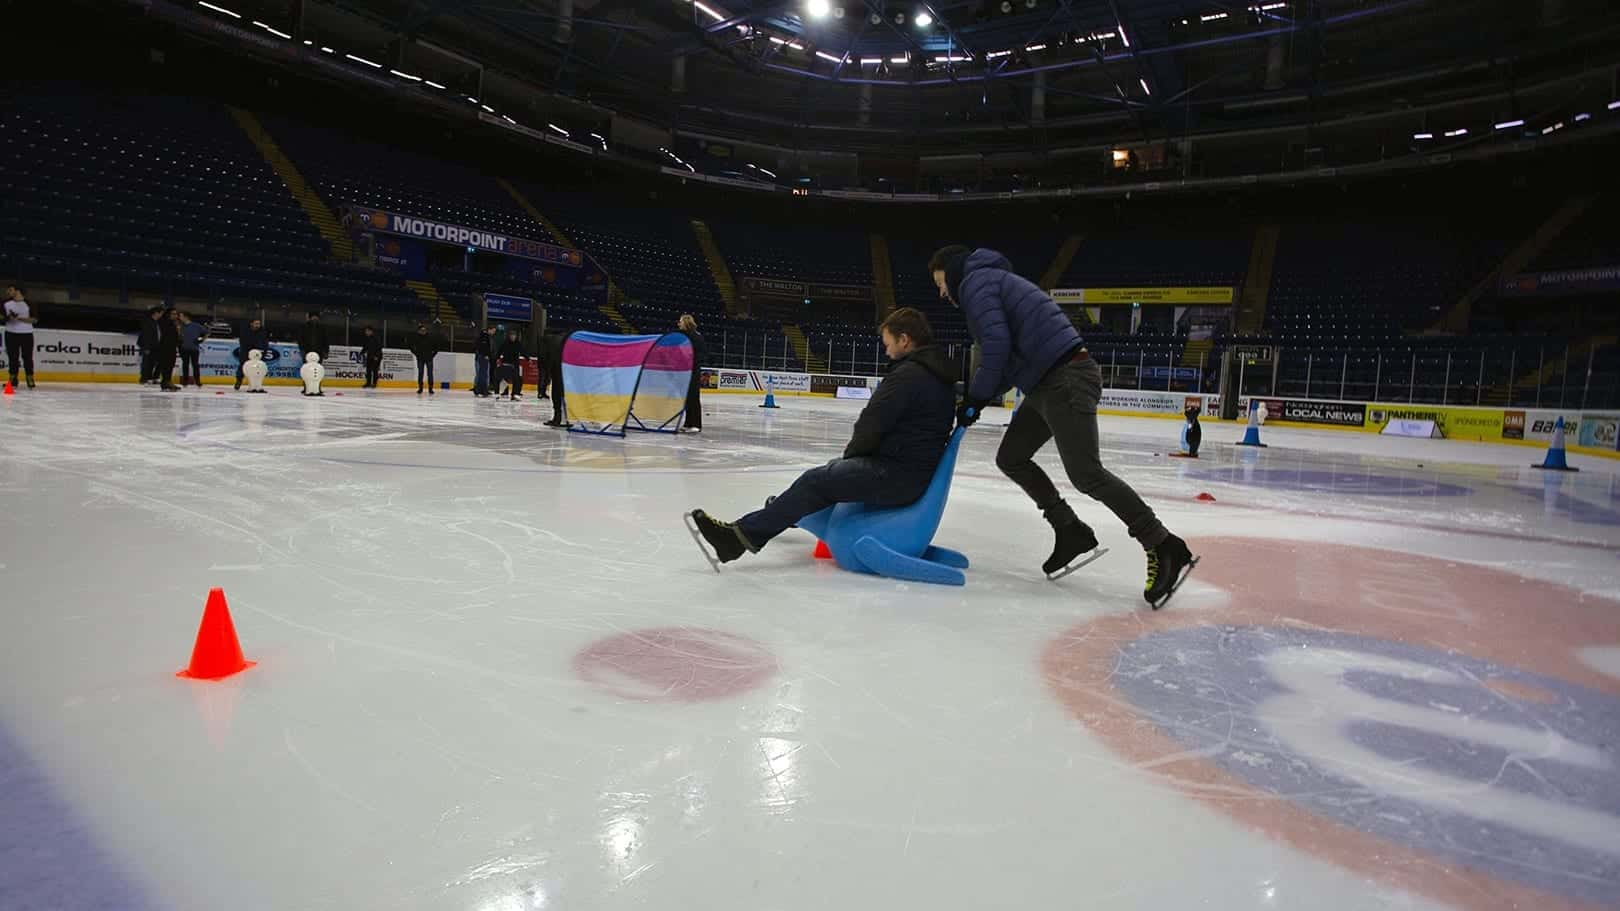 teams having fun on the ice